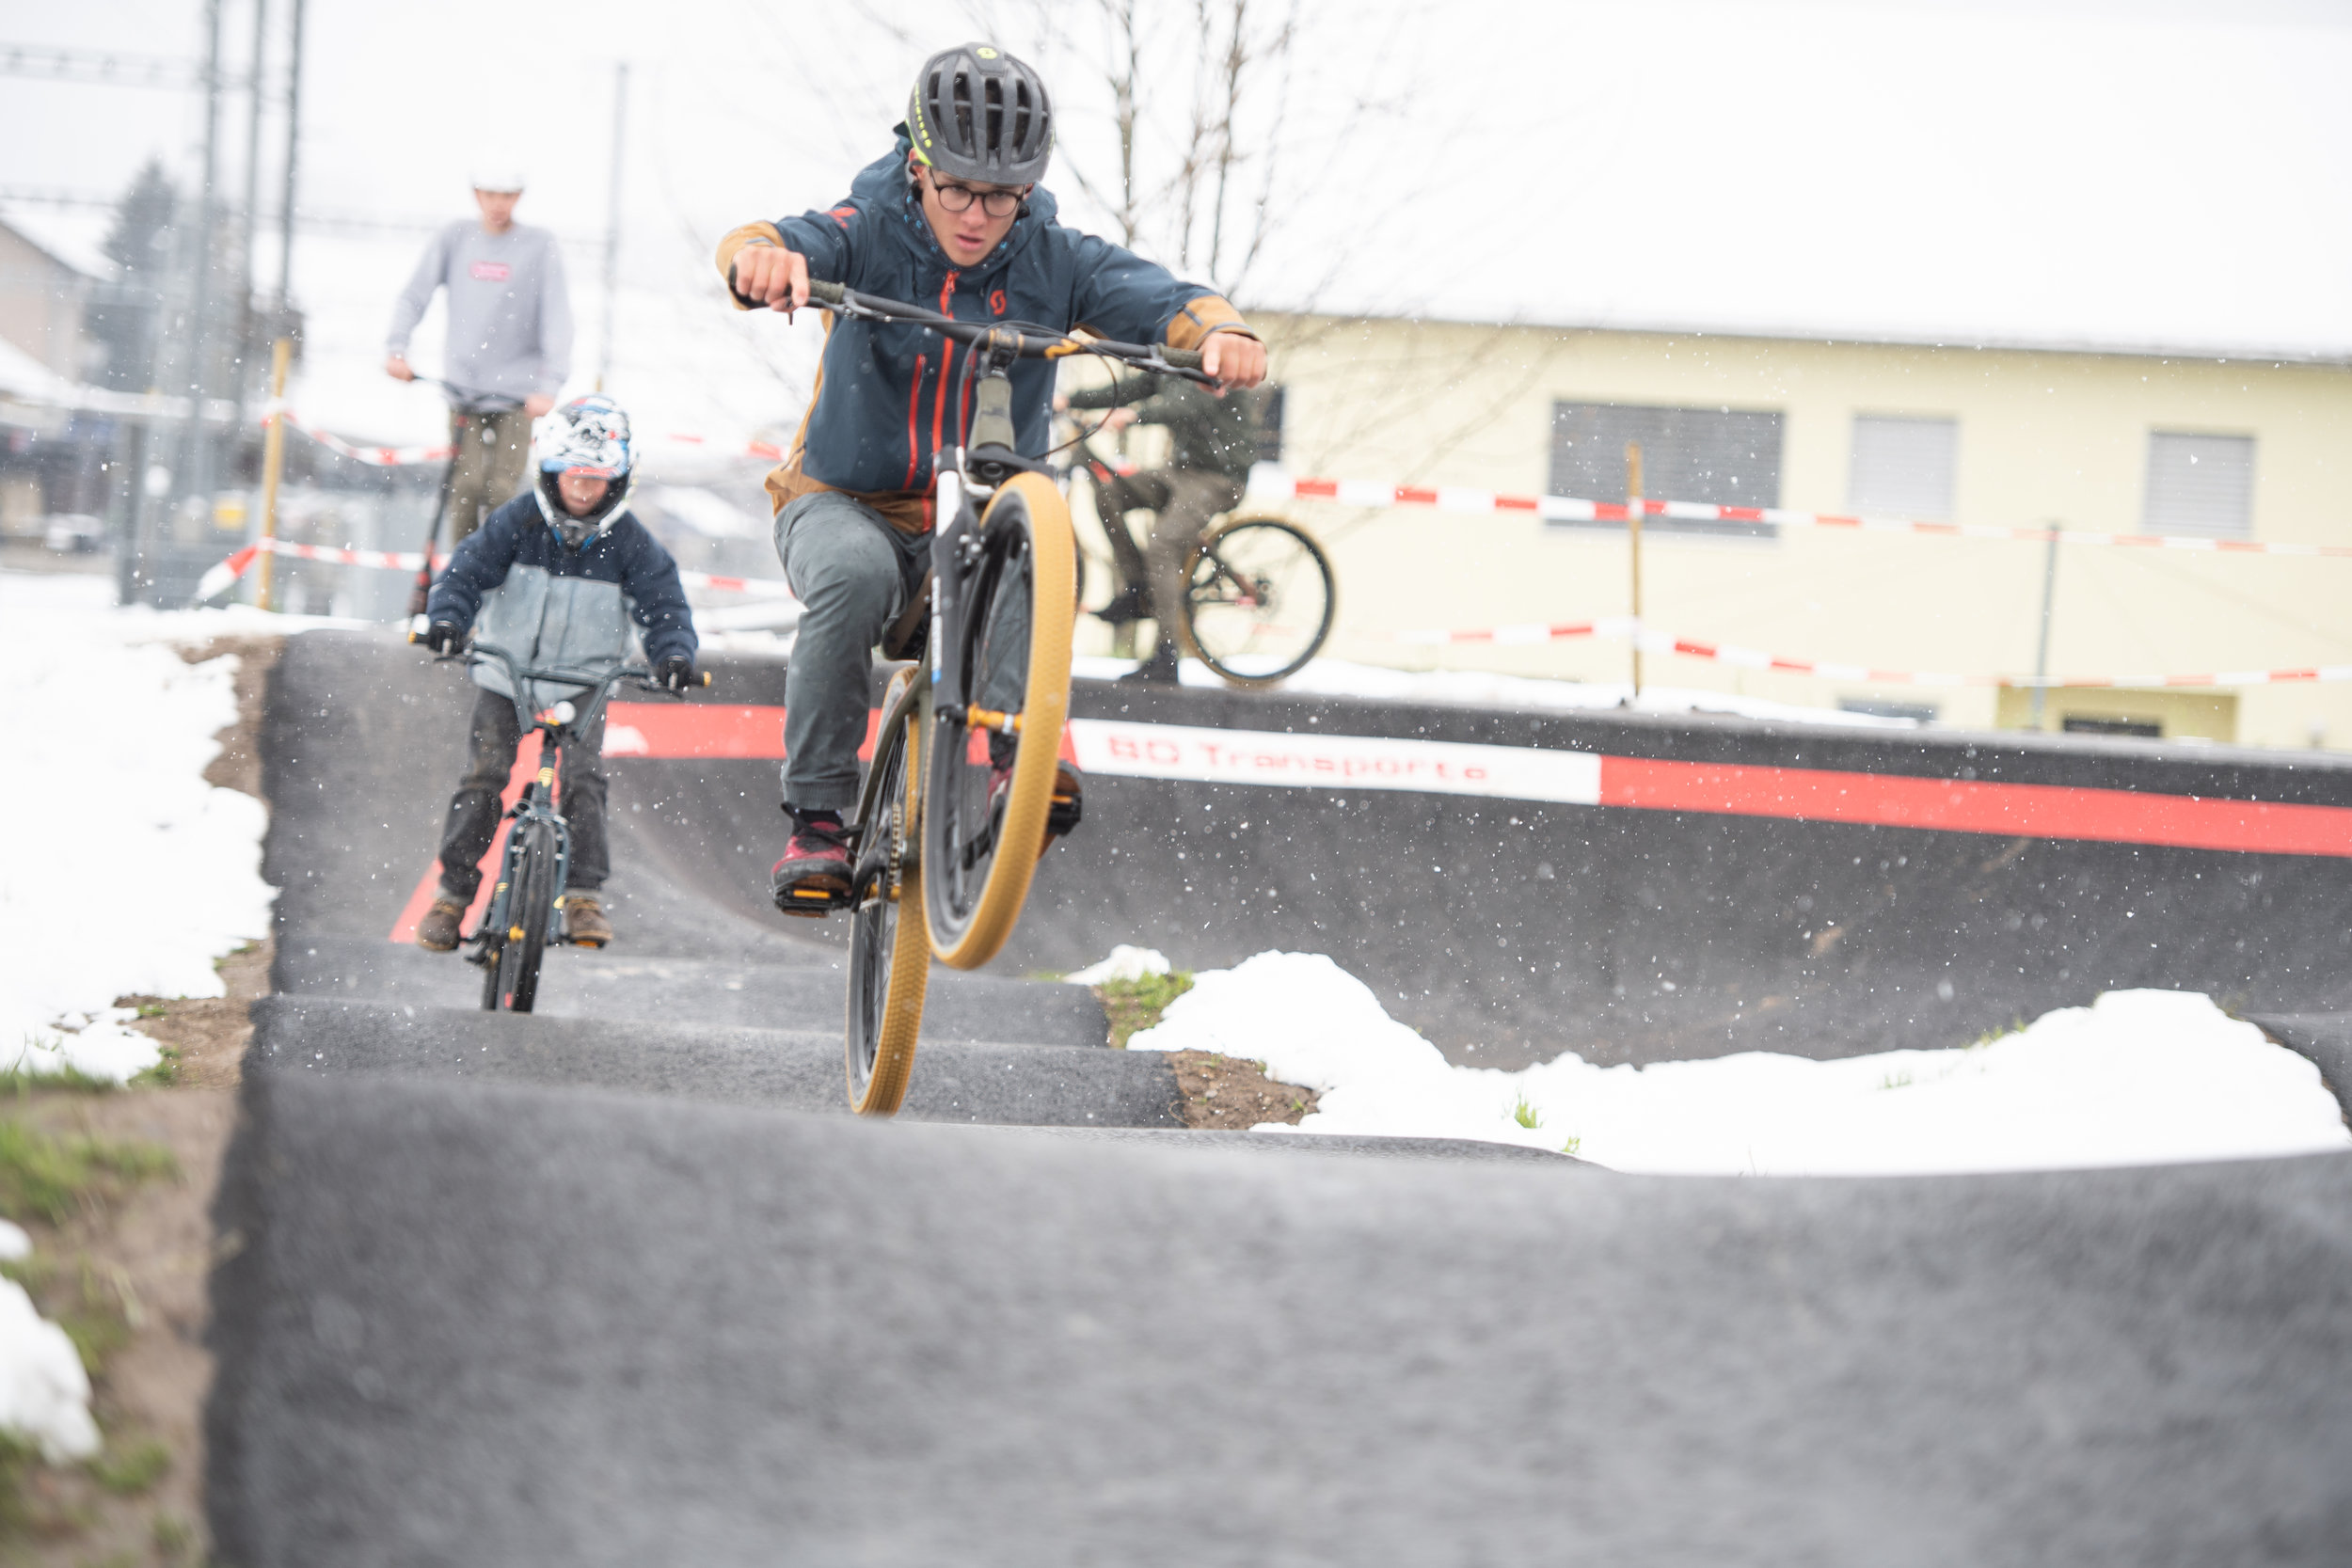 velosolutions_asphalt_pumptrack_schufheim_switzerland_dominik_bosshard-9664_46992061894_o.jpg